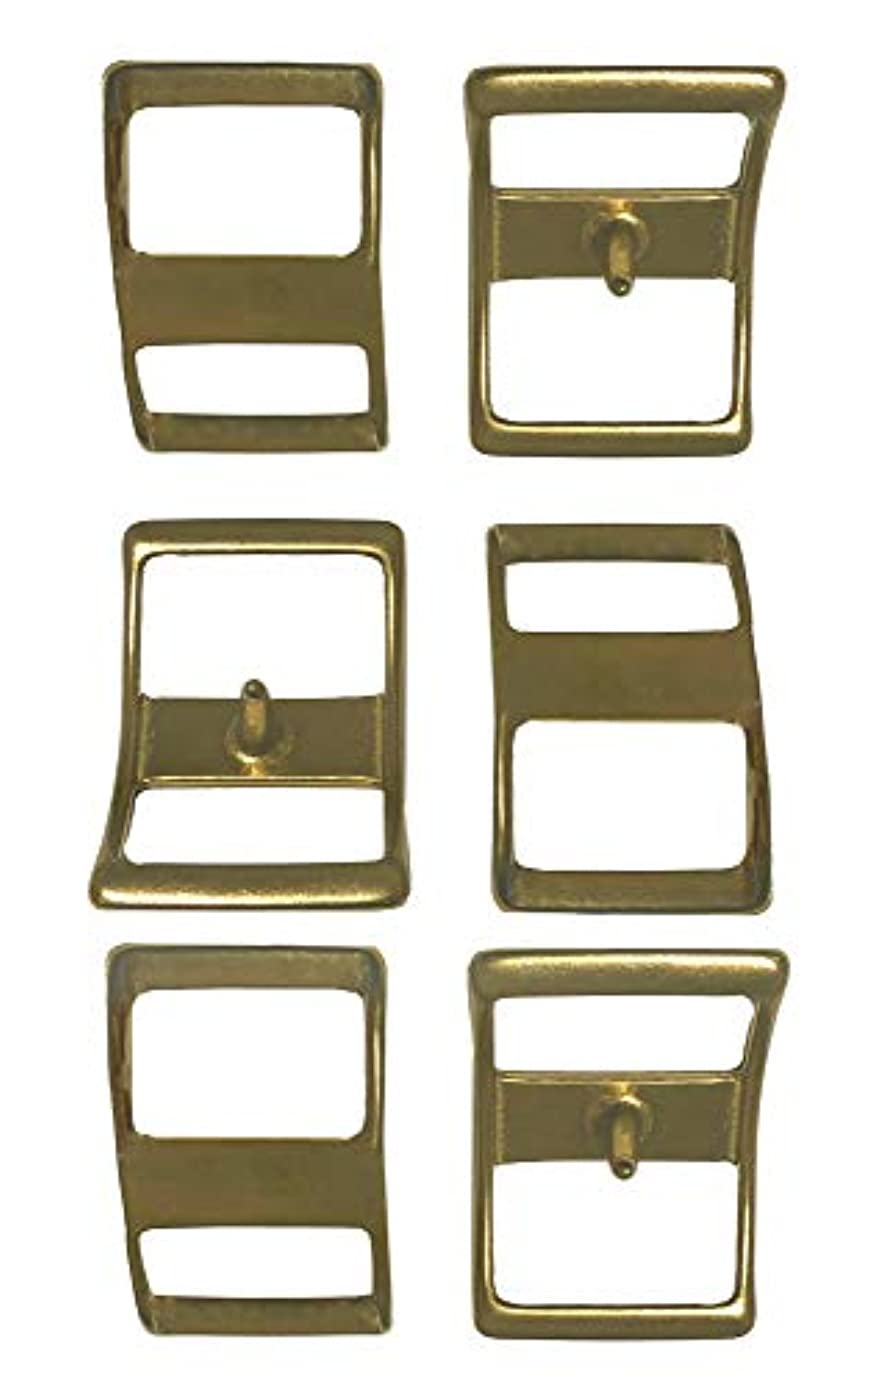 Multi-Pack of #210 Solid Brass Conway Buckles, Pack of 6, Rust-Free, Ideal for Use On Pack Saddles and Tack, Or Any Application That Requires Strap Length Adjustment (1